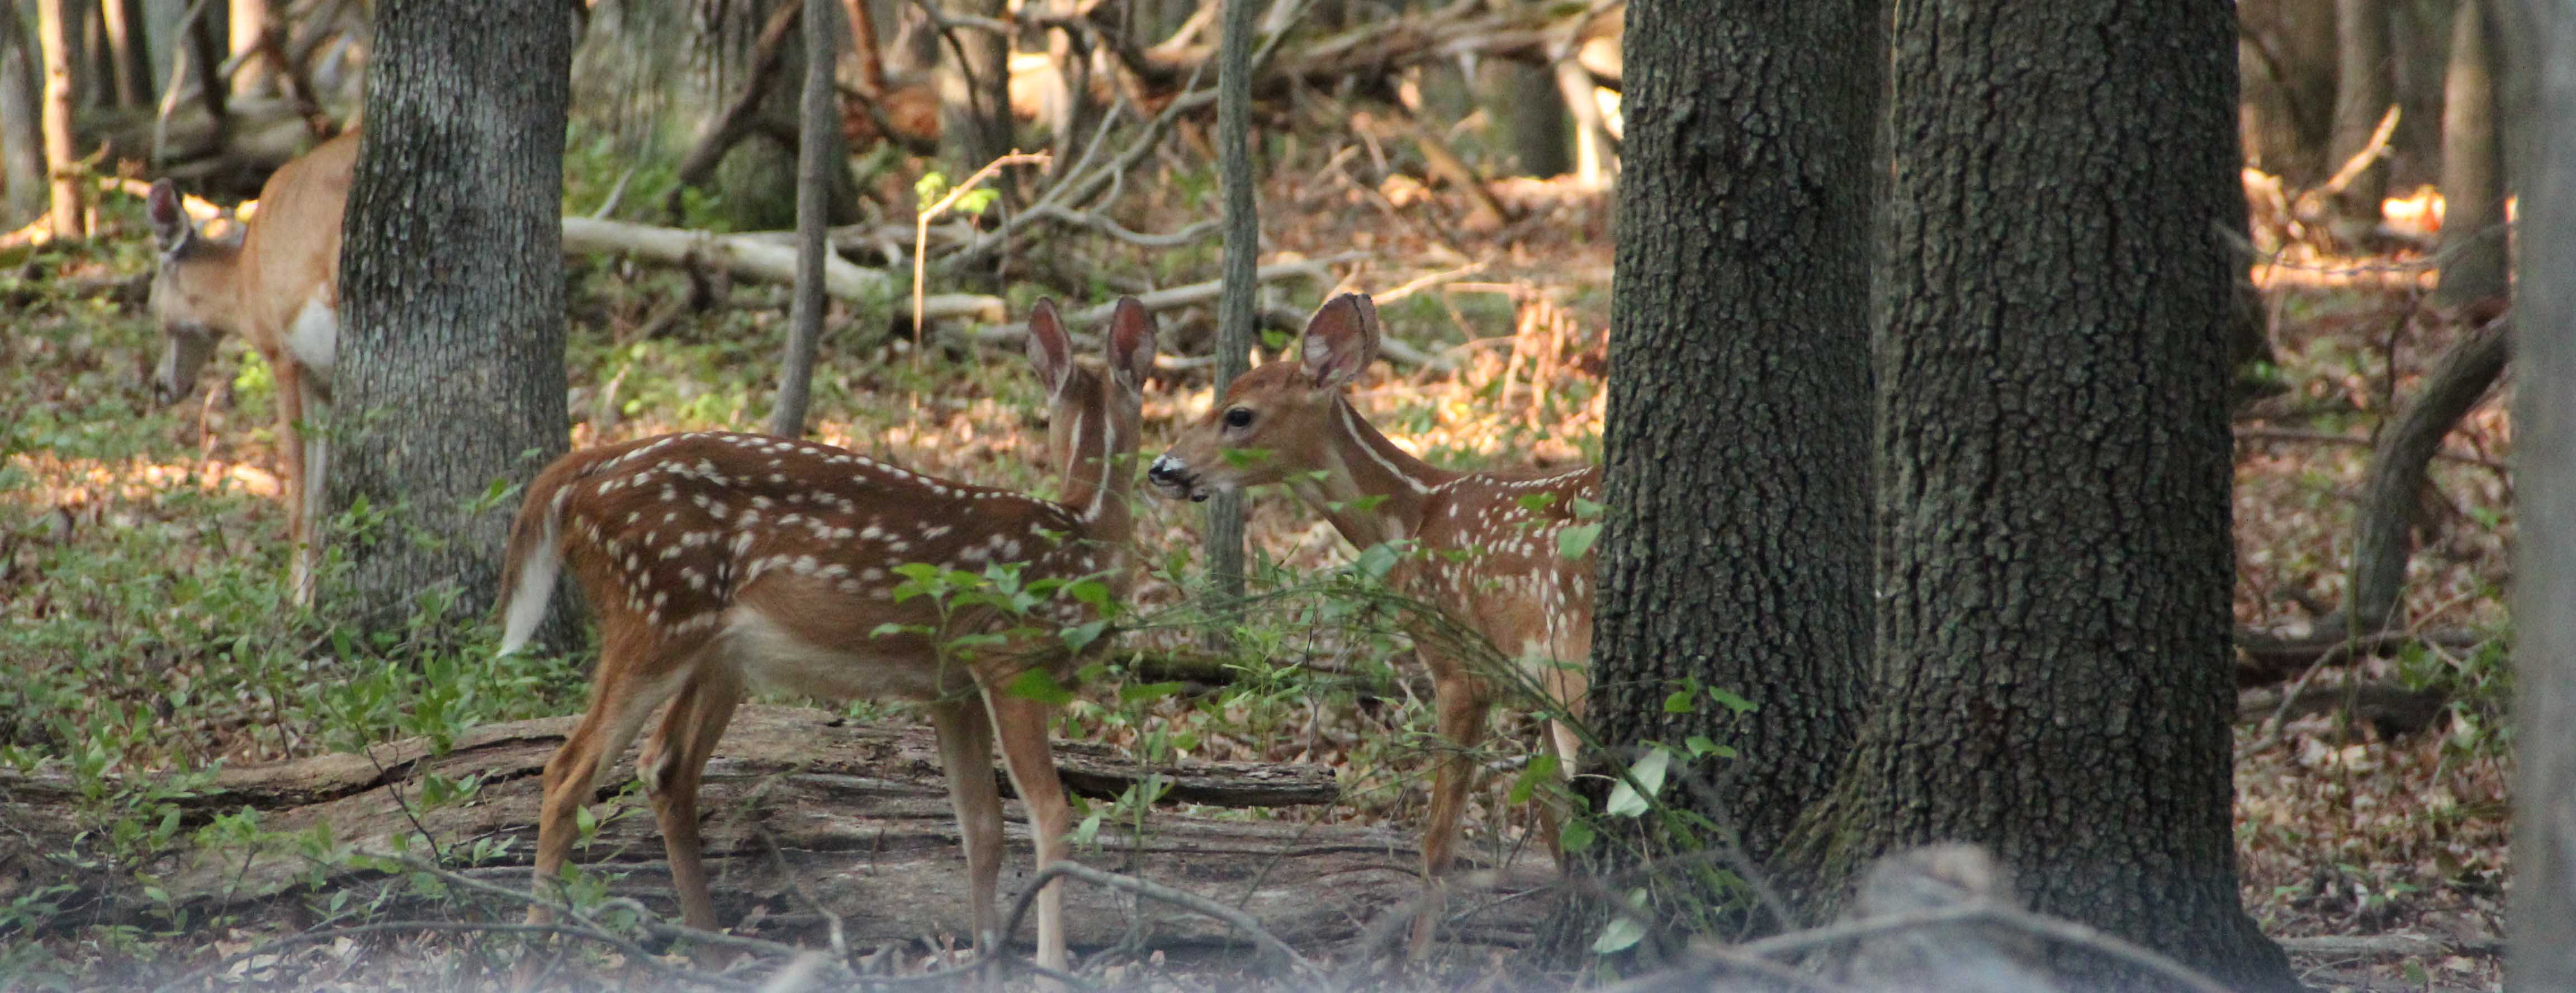 a picture of two fawns in Greenbelt Park